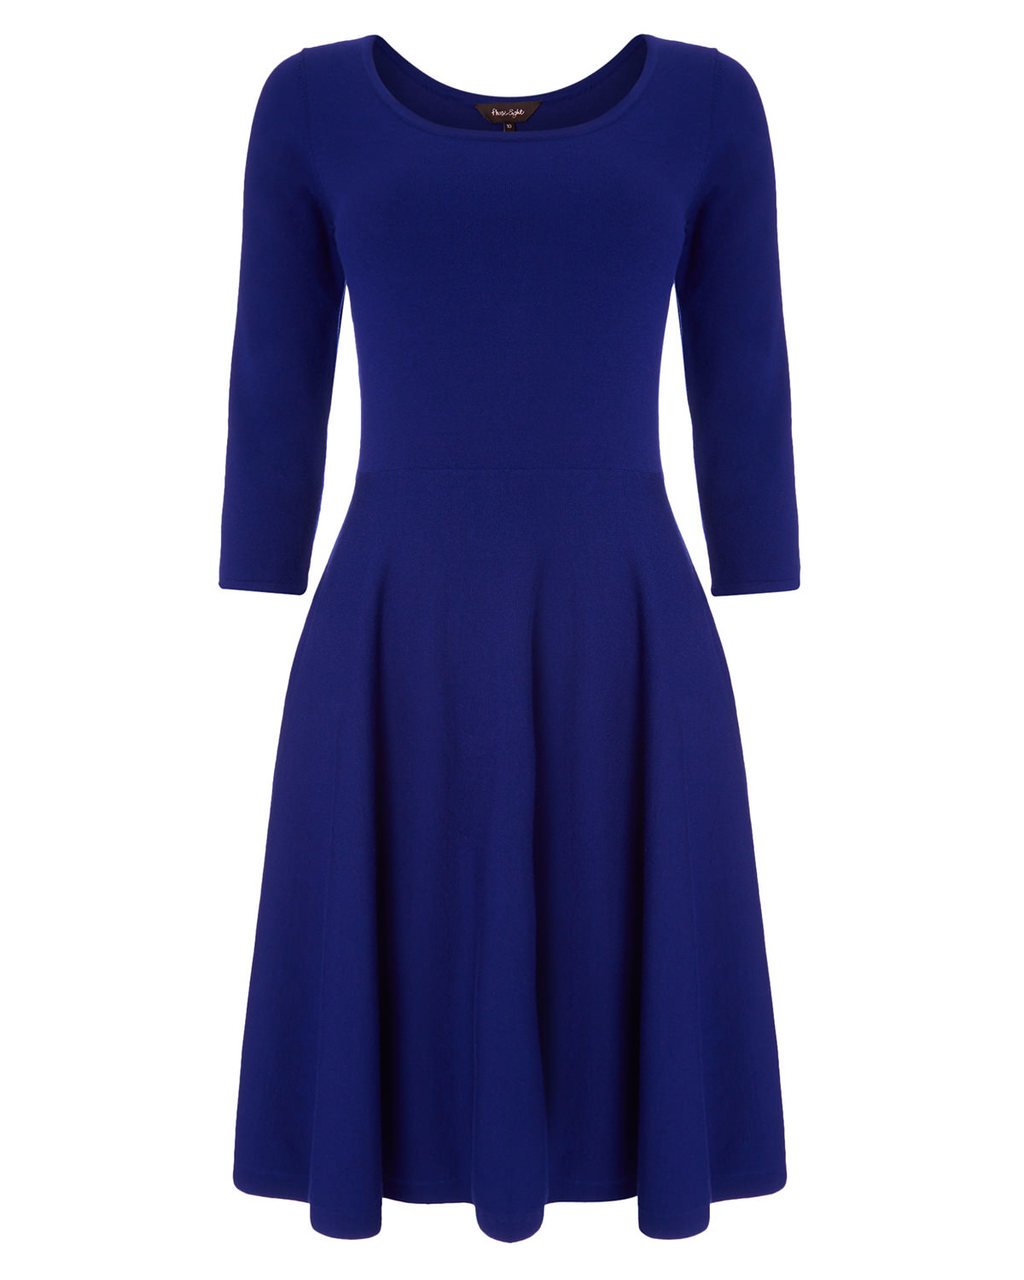 Hadley Fit And Flare Dress - neckline: round neck; pattern: plain; predominant colour: royal blue; occasions: work; length: on the knee; fit: fitted at waist & bust; style: fit & flare; hip detail: subtle/flattering hip detail; sleeve length: 3/4 length; sleeve style: standard; texture group: knits/crochet; pattern type: fabric; season: a/w 2015; wardrobe: highlight